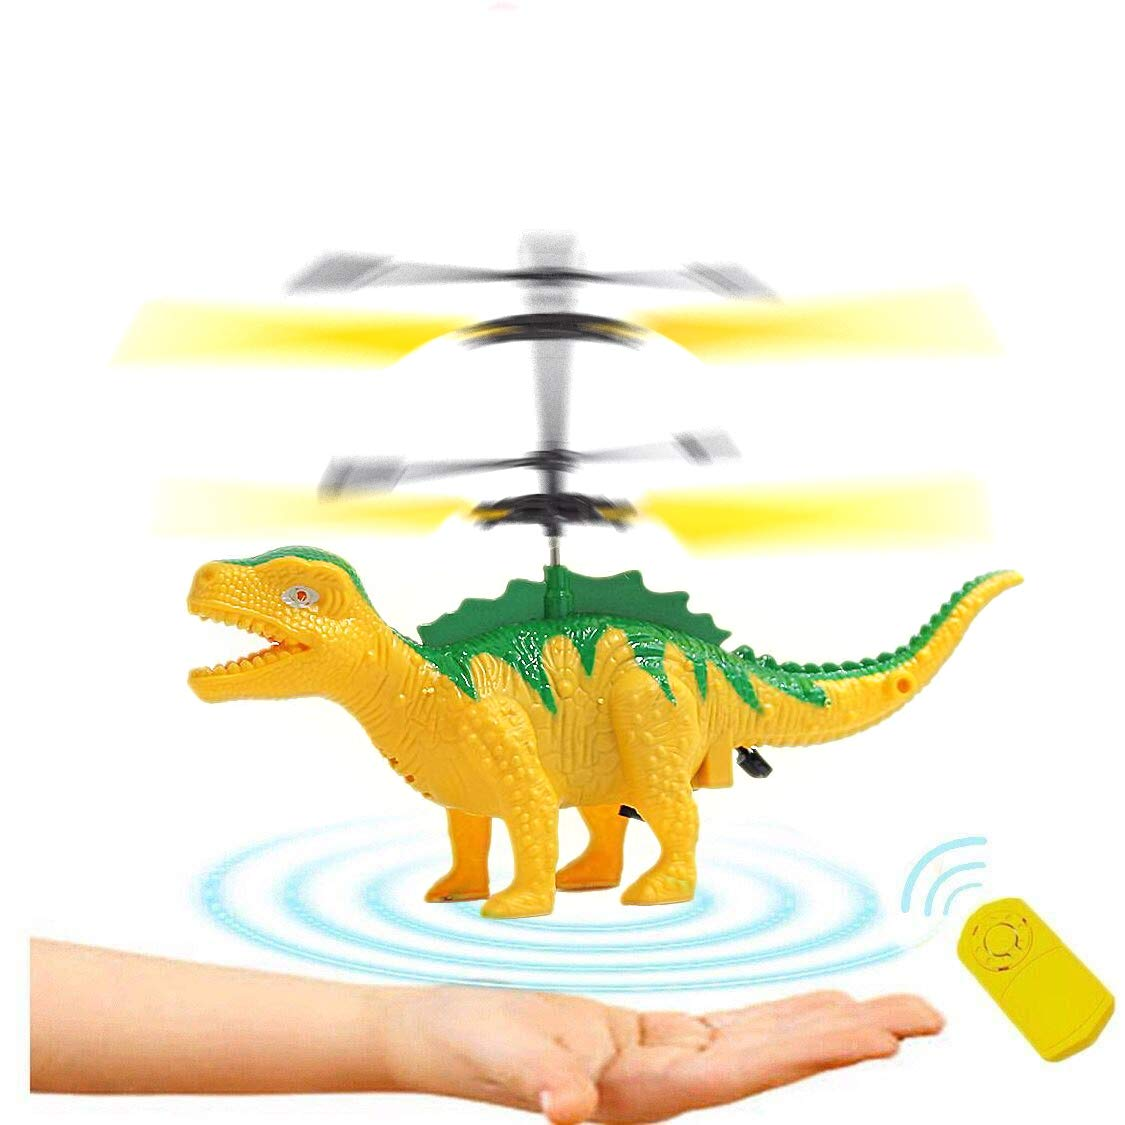 Anda RC Flying Helicopter Dinosaurs Dragon Toys for 6 Year Old Boys Girls Kids, Mini Remote and Hand Controlled Dinosaurs Helicopter for Birthday Holiday Xmas by Anda (Image #1)